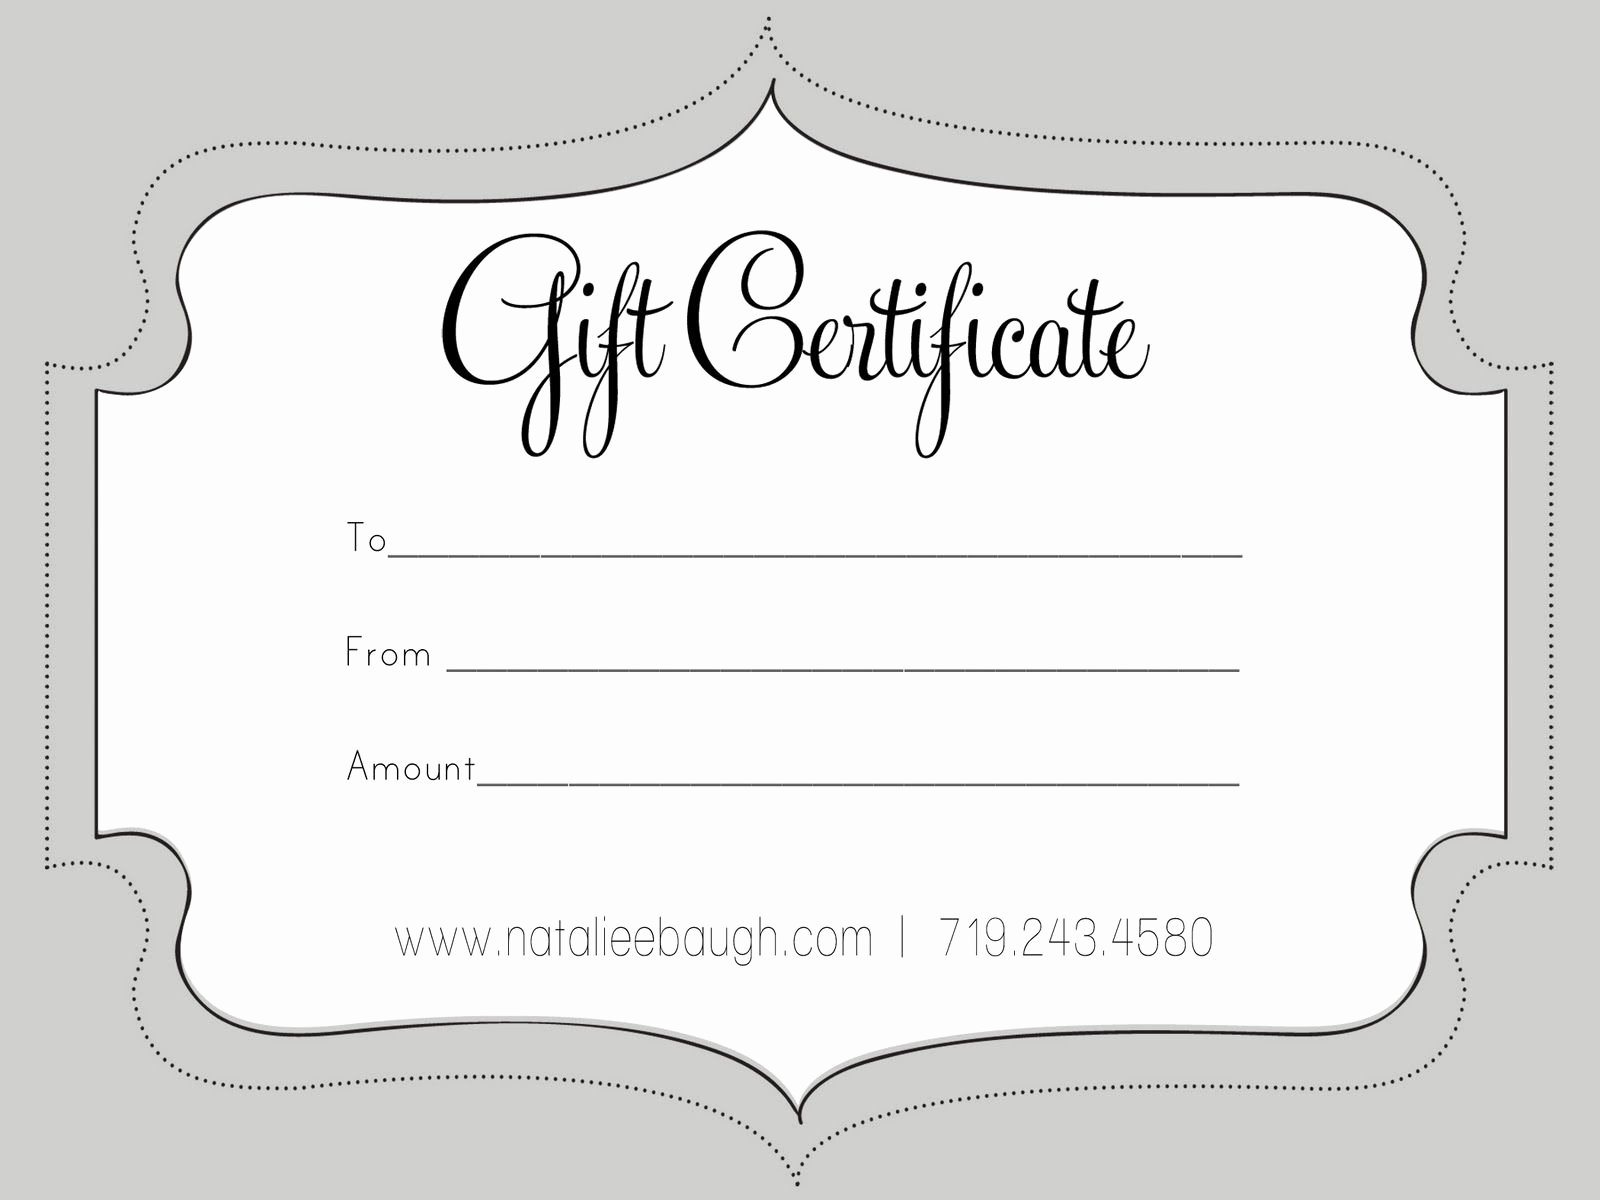 Teeth Whitening Gift Certificate Template Awesome A Cute Looking T Certificate S P A